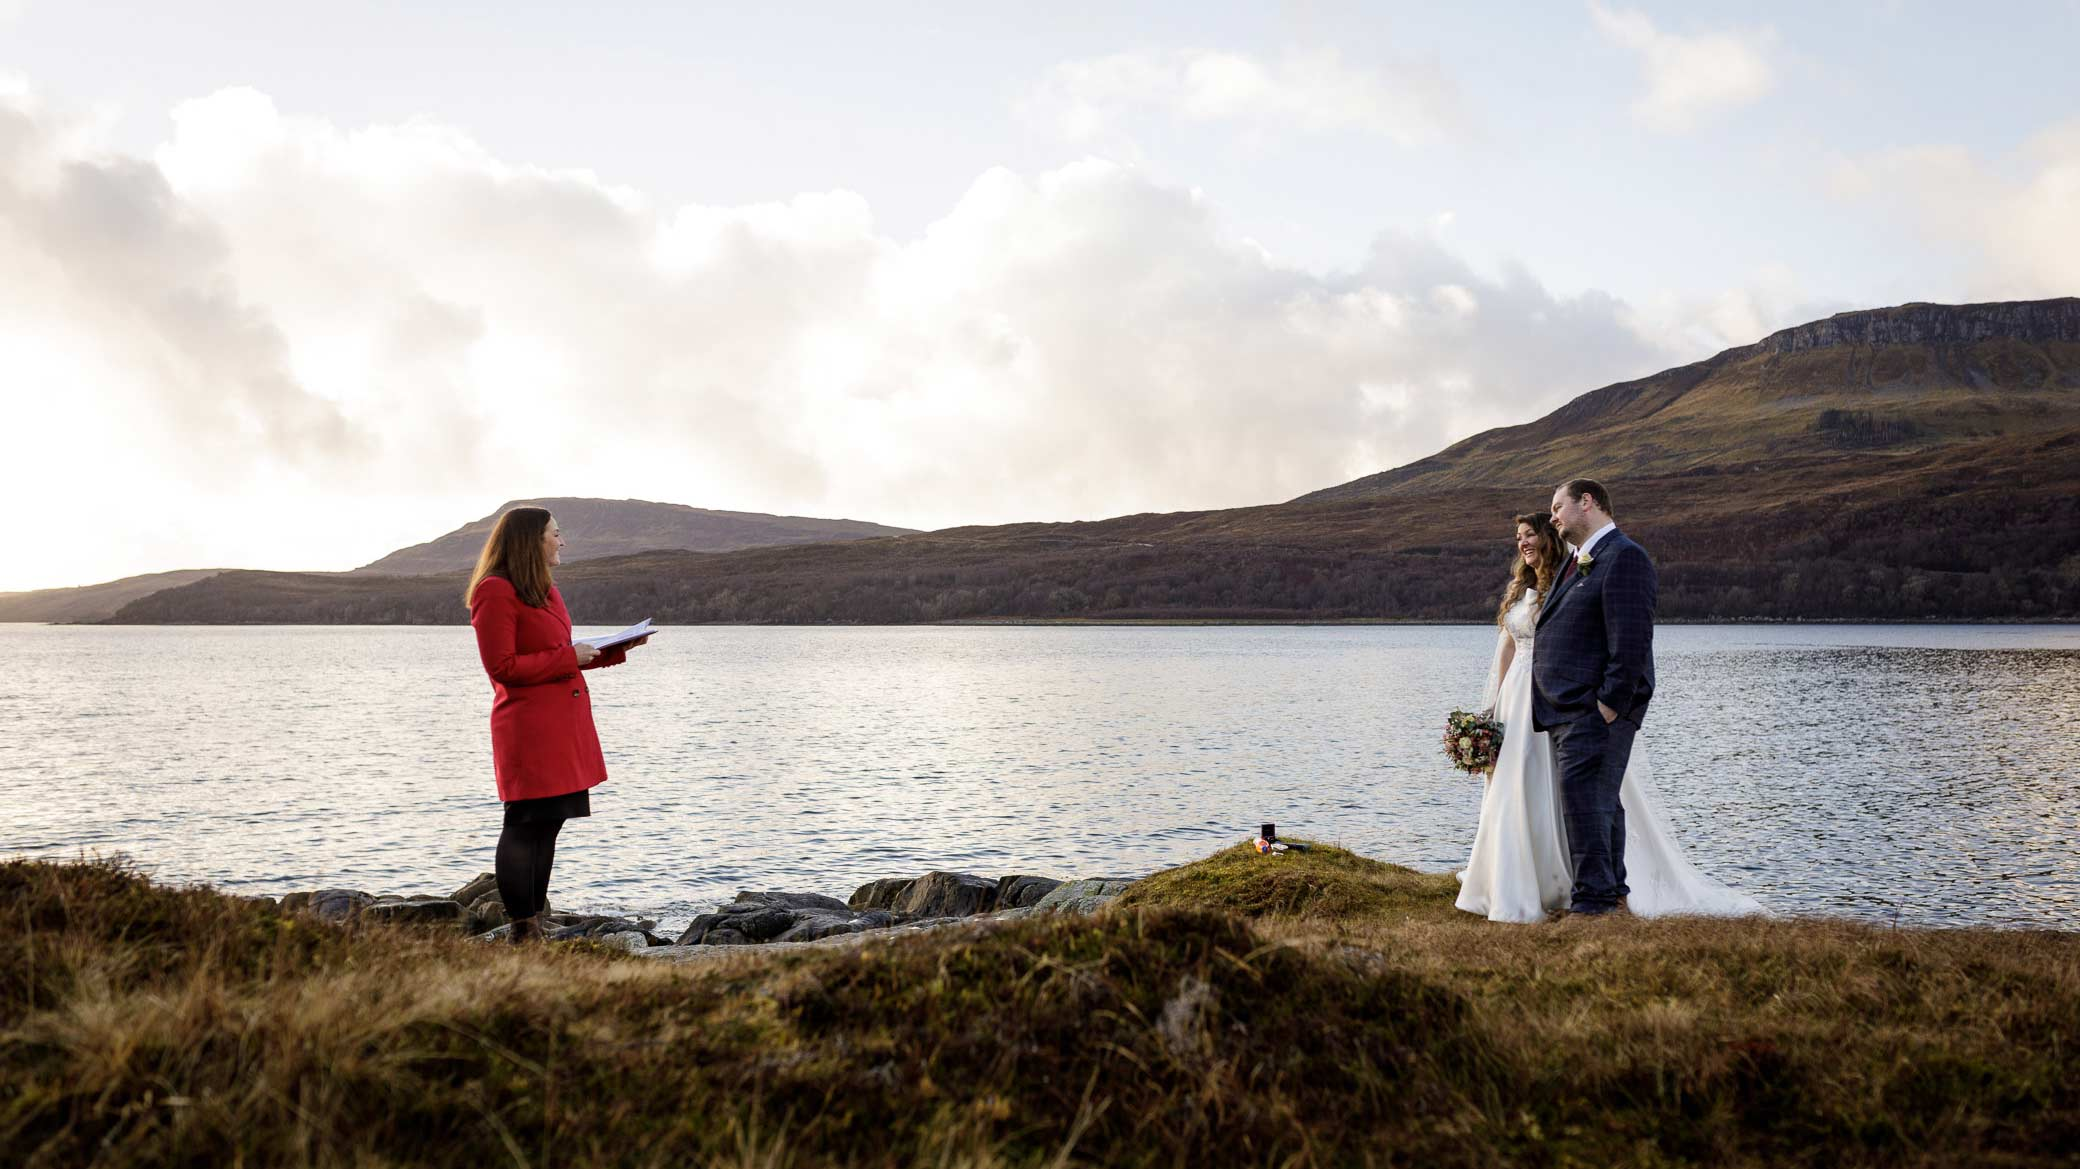 A man and woman marry in front of a loch